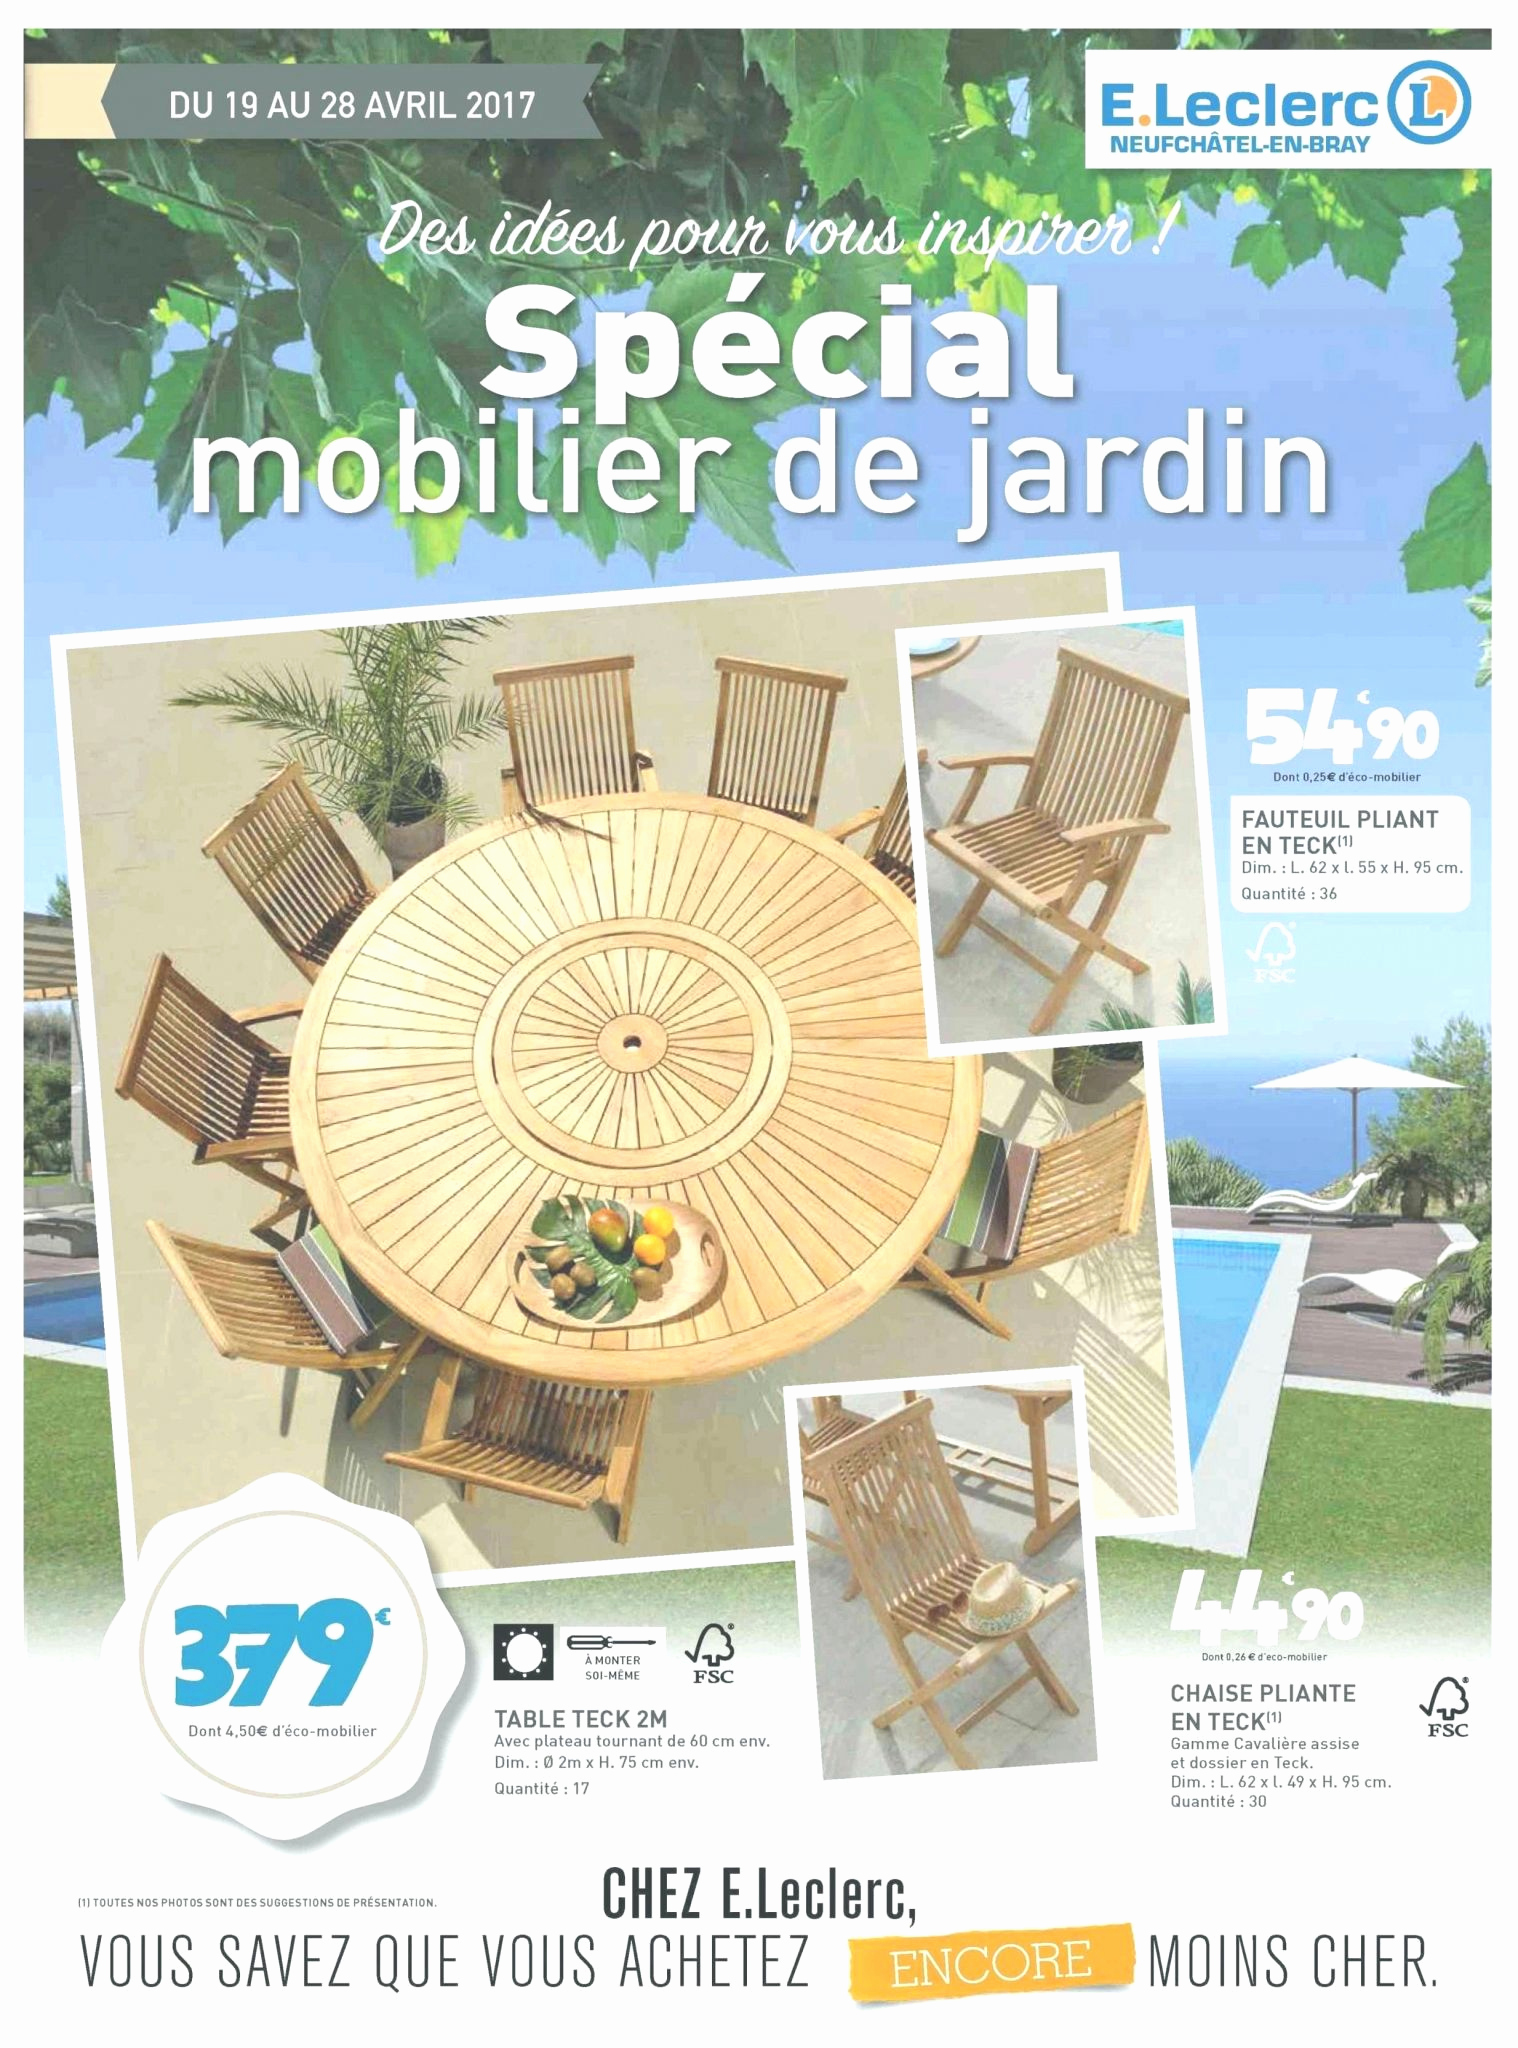 Table Chaise Jardin Pas Cher Best Of Salon De Jardin Leclerc Catalogue 2017 Le Meilleur De Table Of 25 Luxe Table Chaise Jardin Pas Cher